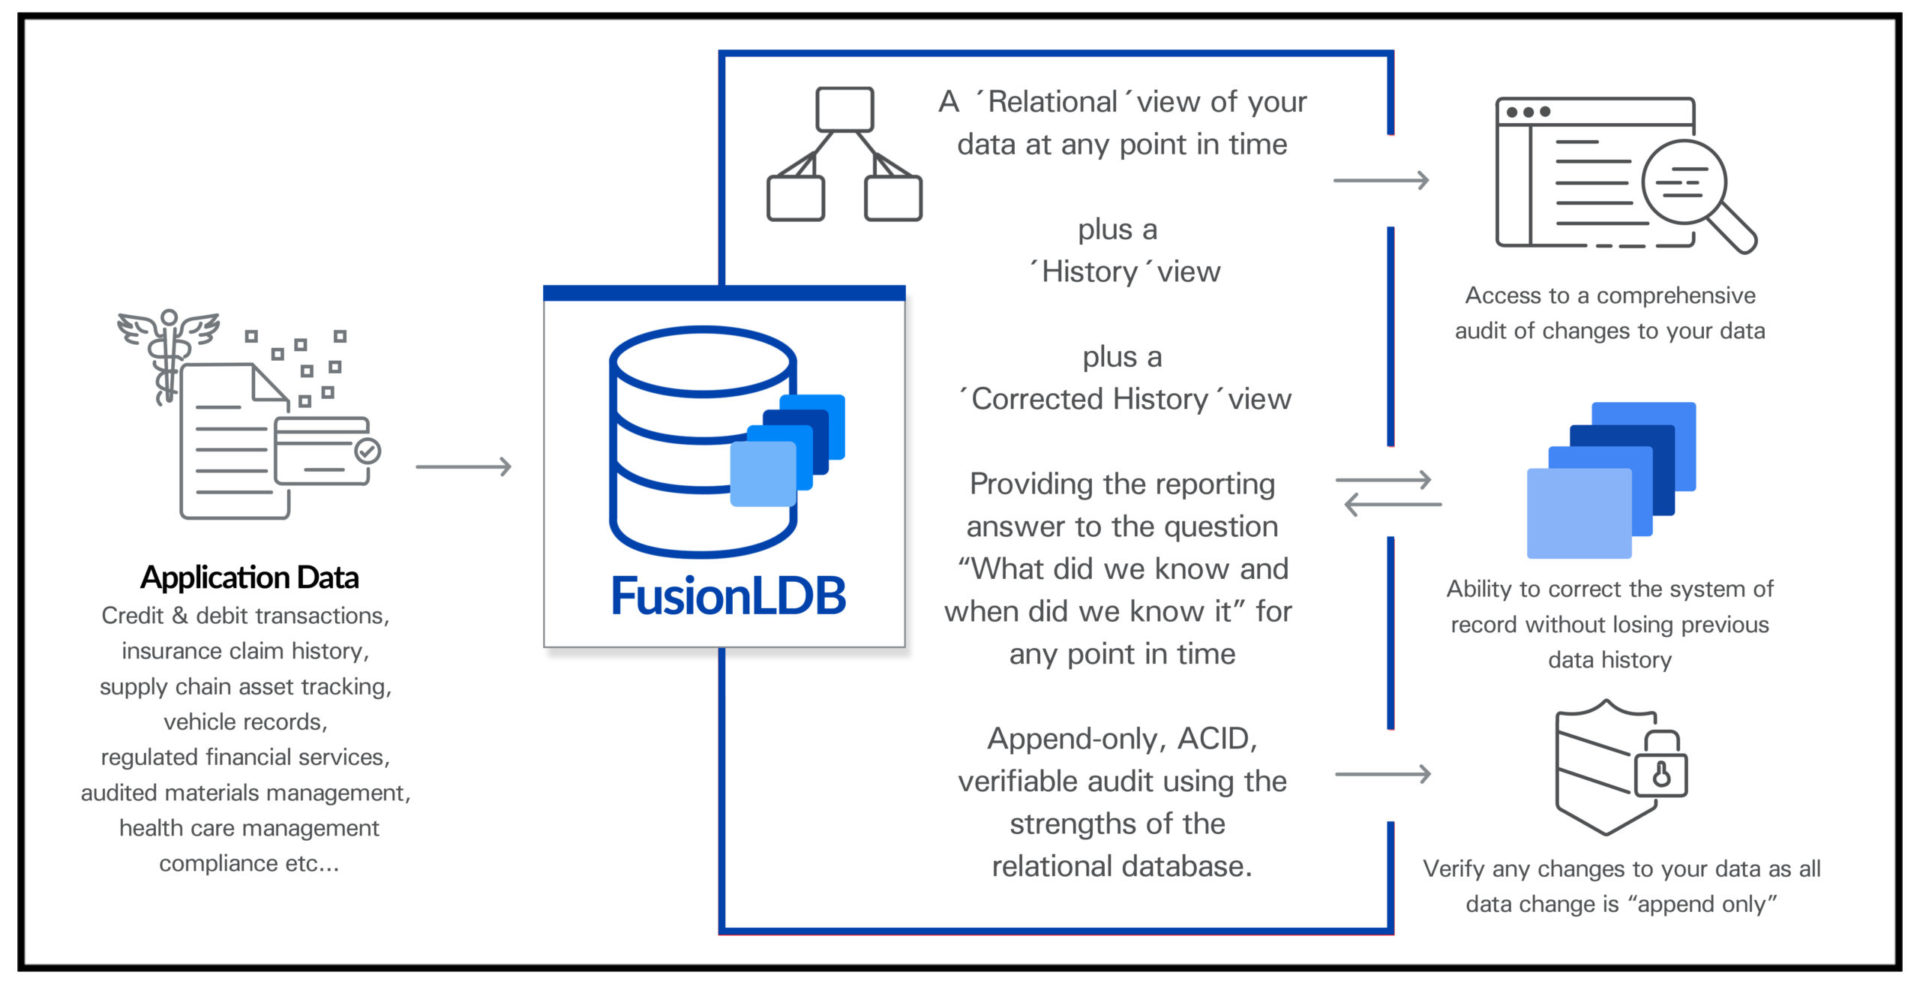 FusionLDB cloud diagram slide